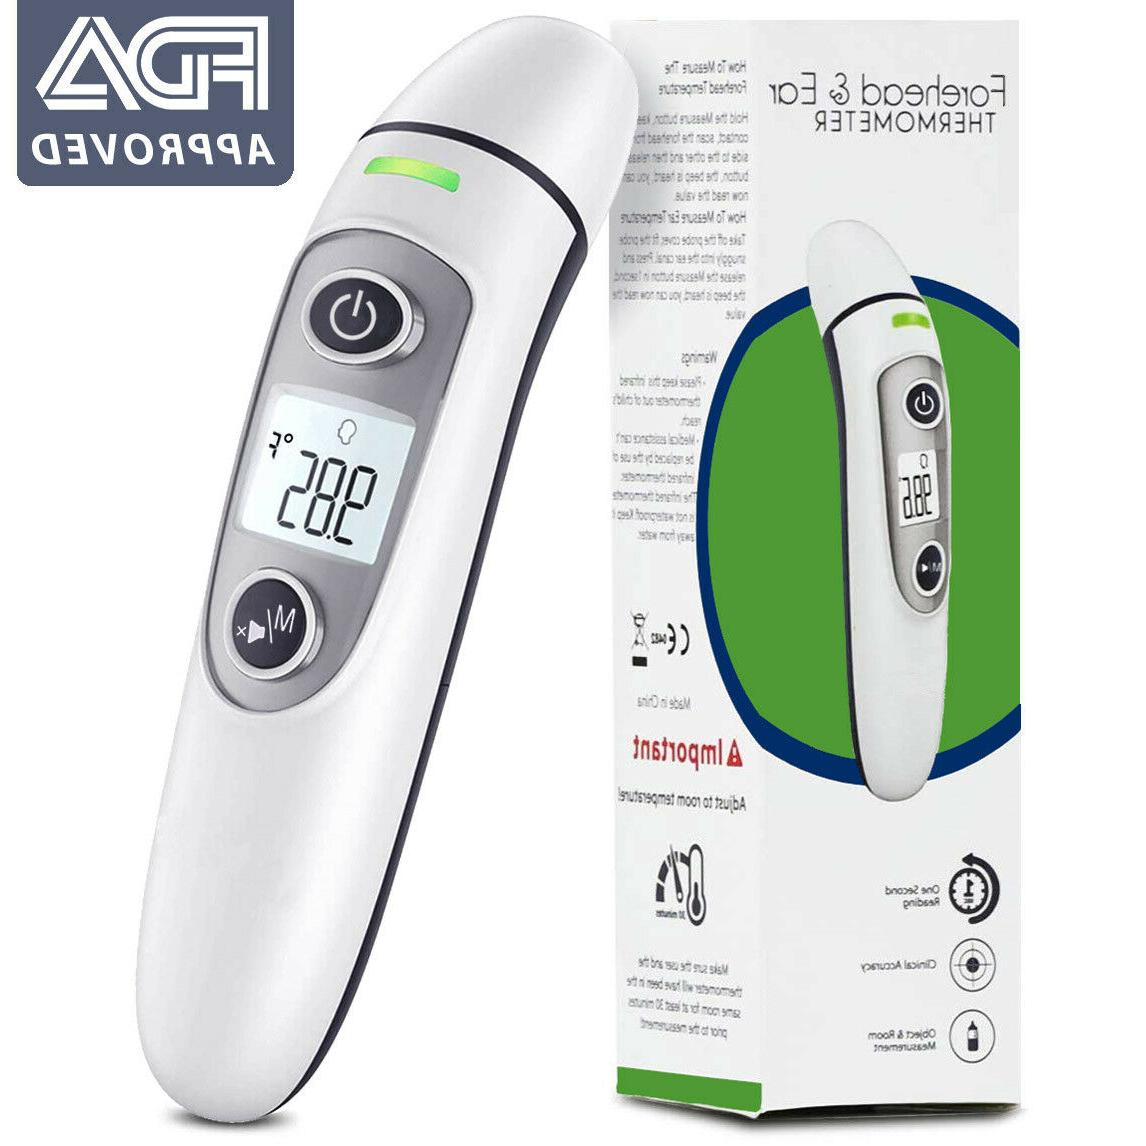 infrared thermometer for fever digital thermometer